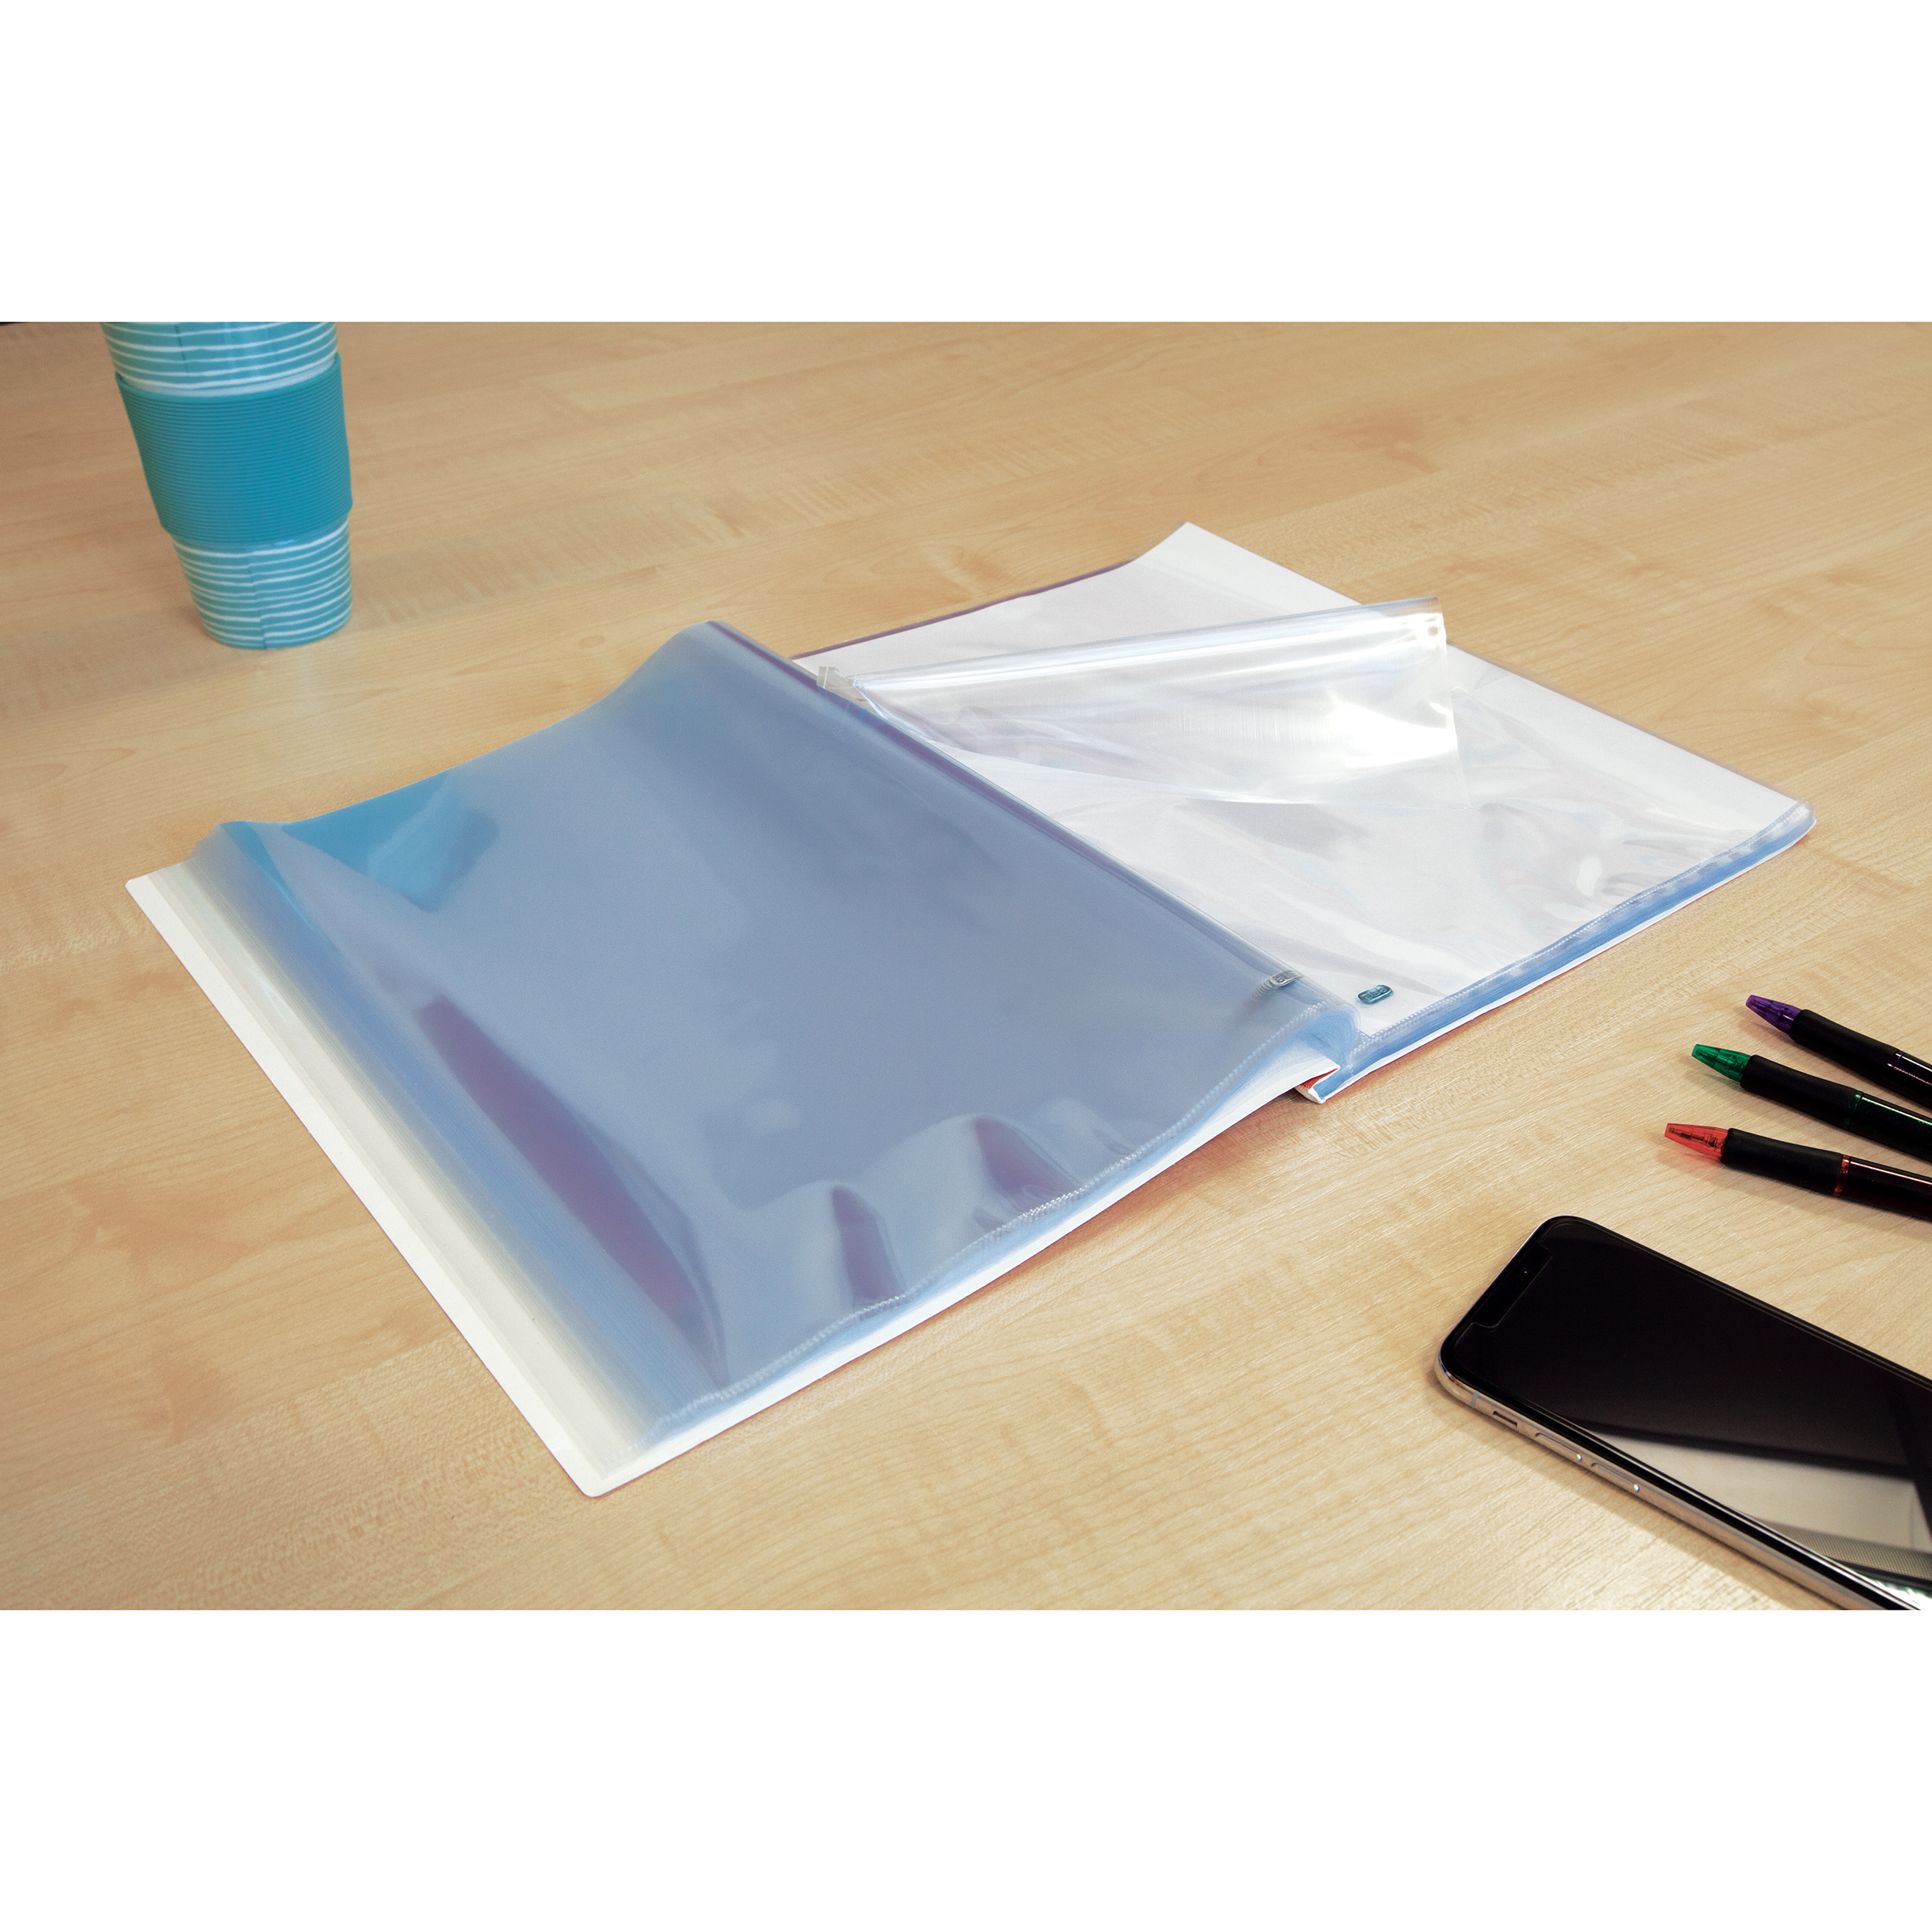 File pockets or accessories Oxford Punched Pocket Pad 60 Pockets A4 Glass Clear Ref 400129426_XX1220 2 for 1 Jan 12/20